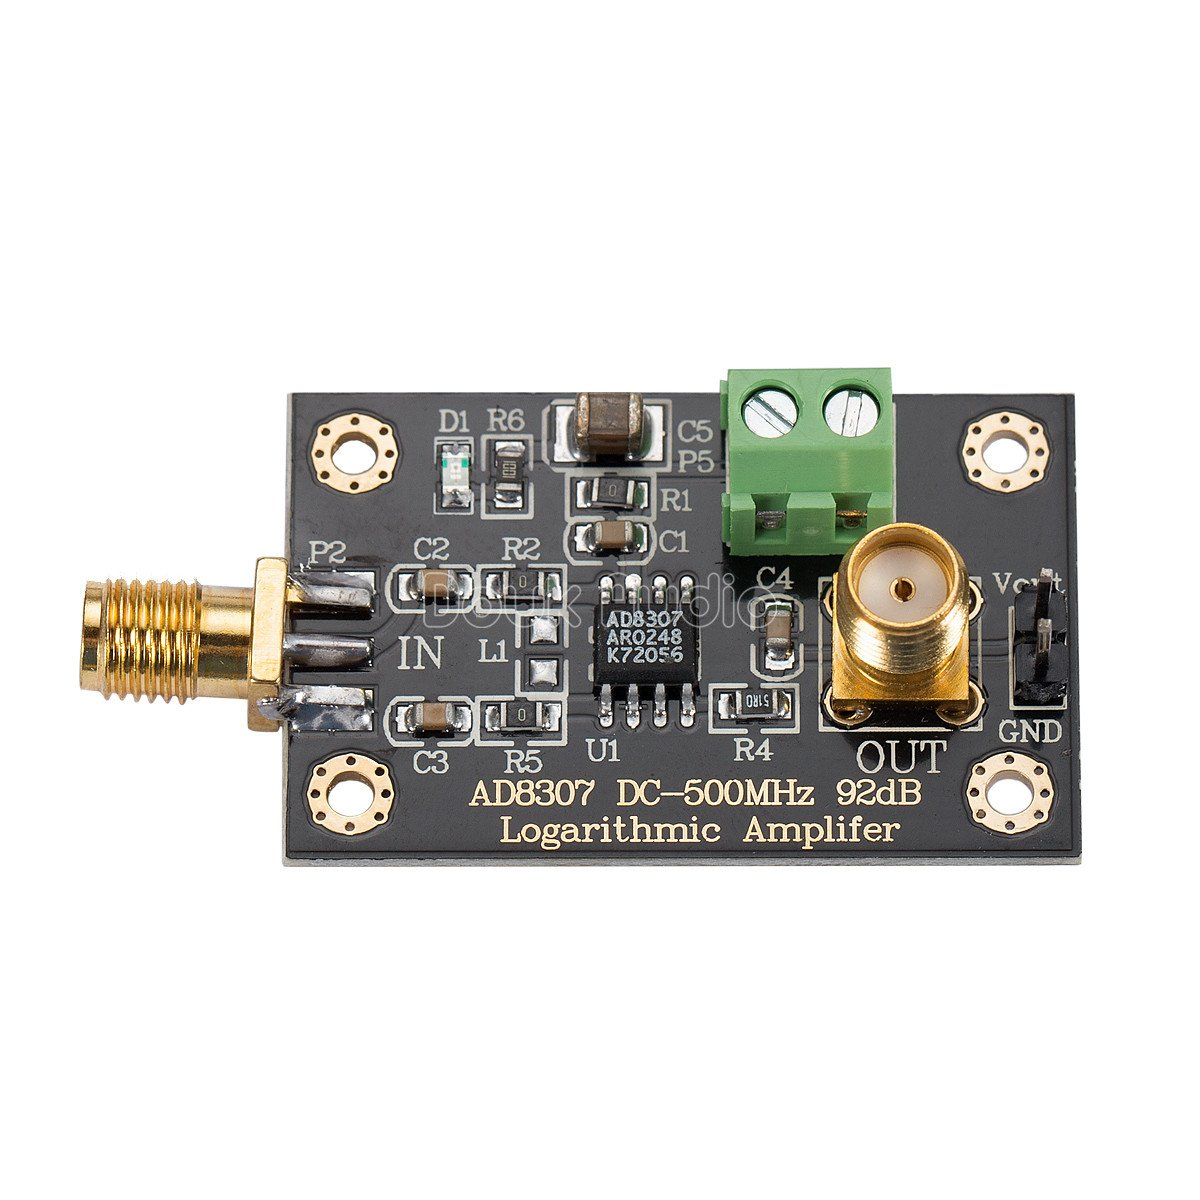 Nobsound Ad8307 Rf Power Detector Module Logarithmic Fast Amplifier Dc 500mhz Transmitter Test Home Audio Theater